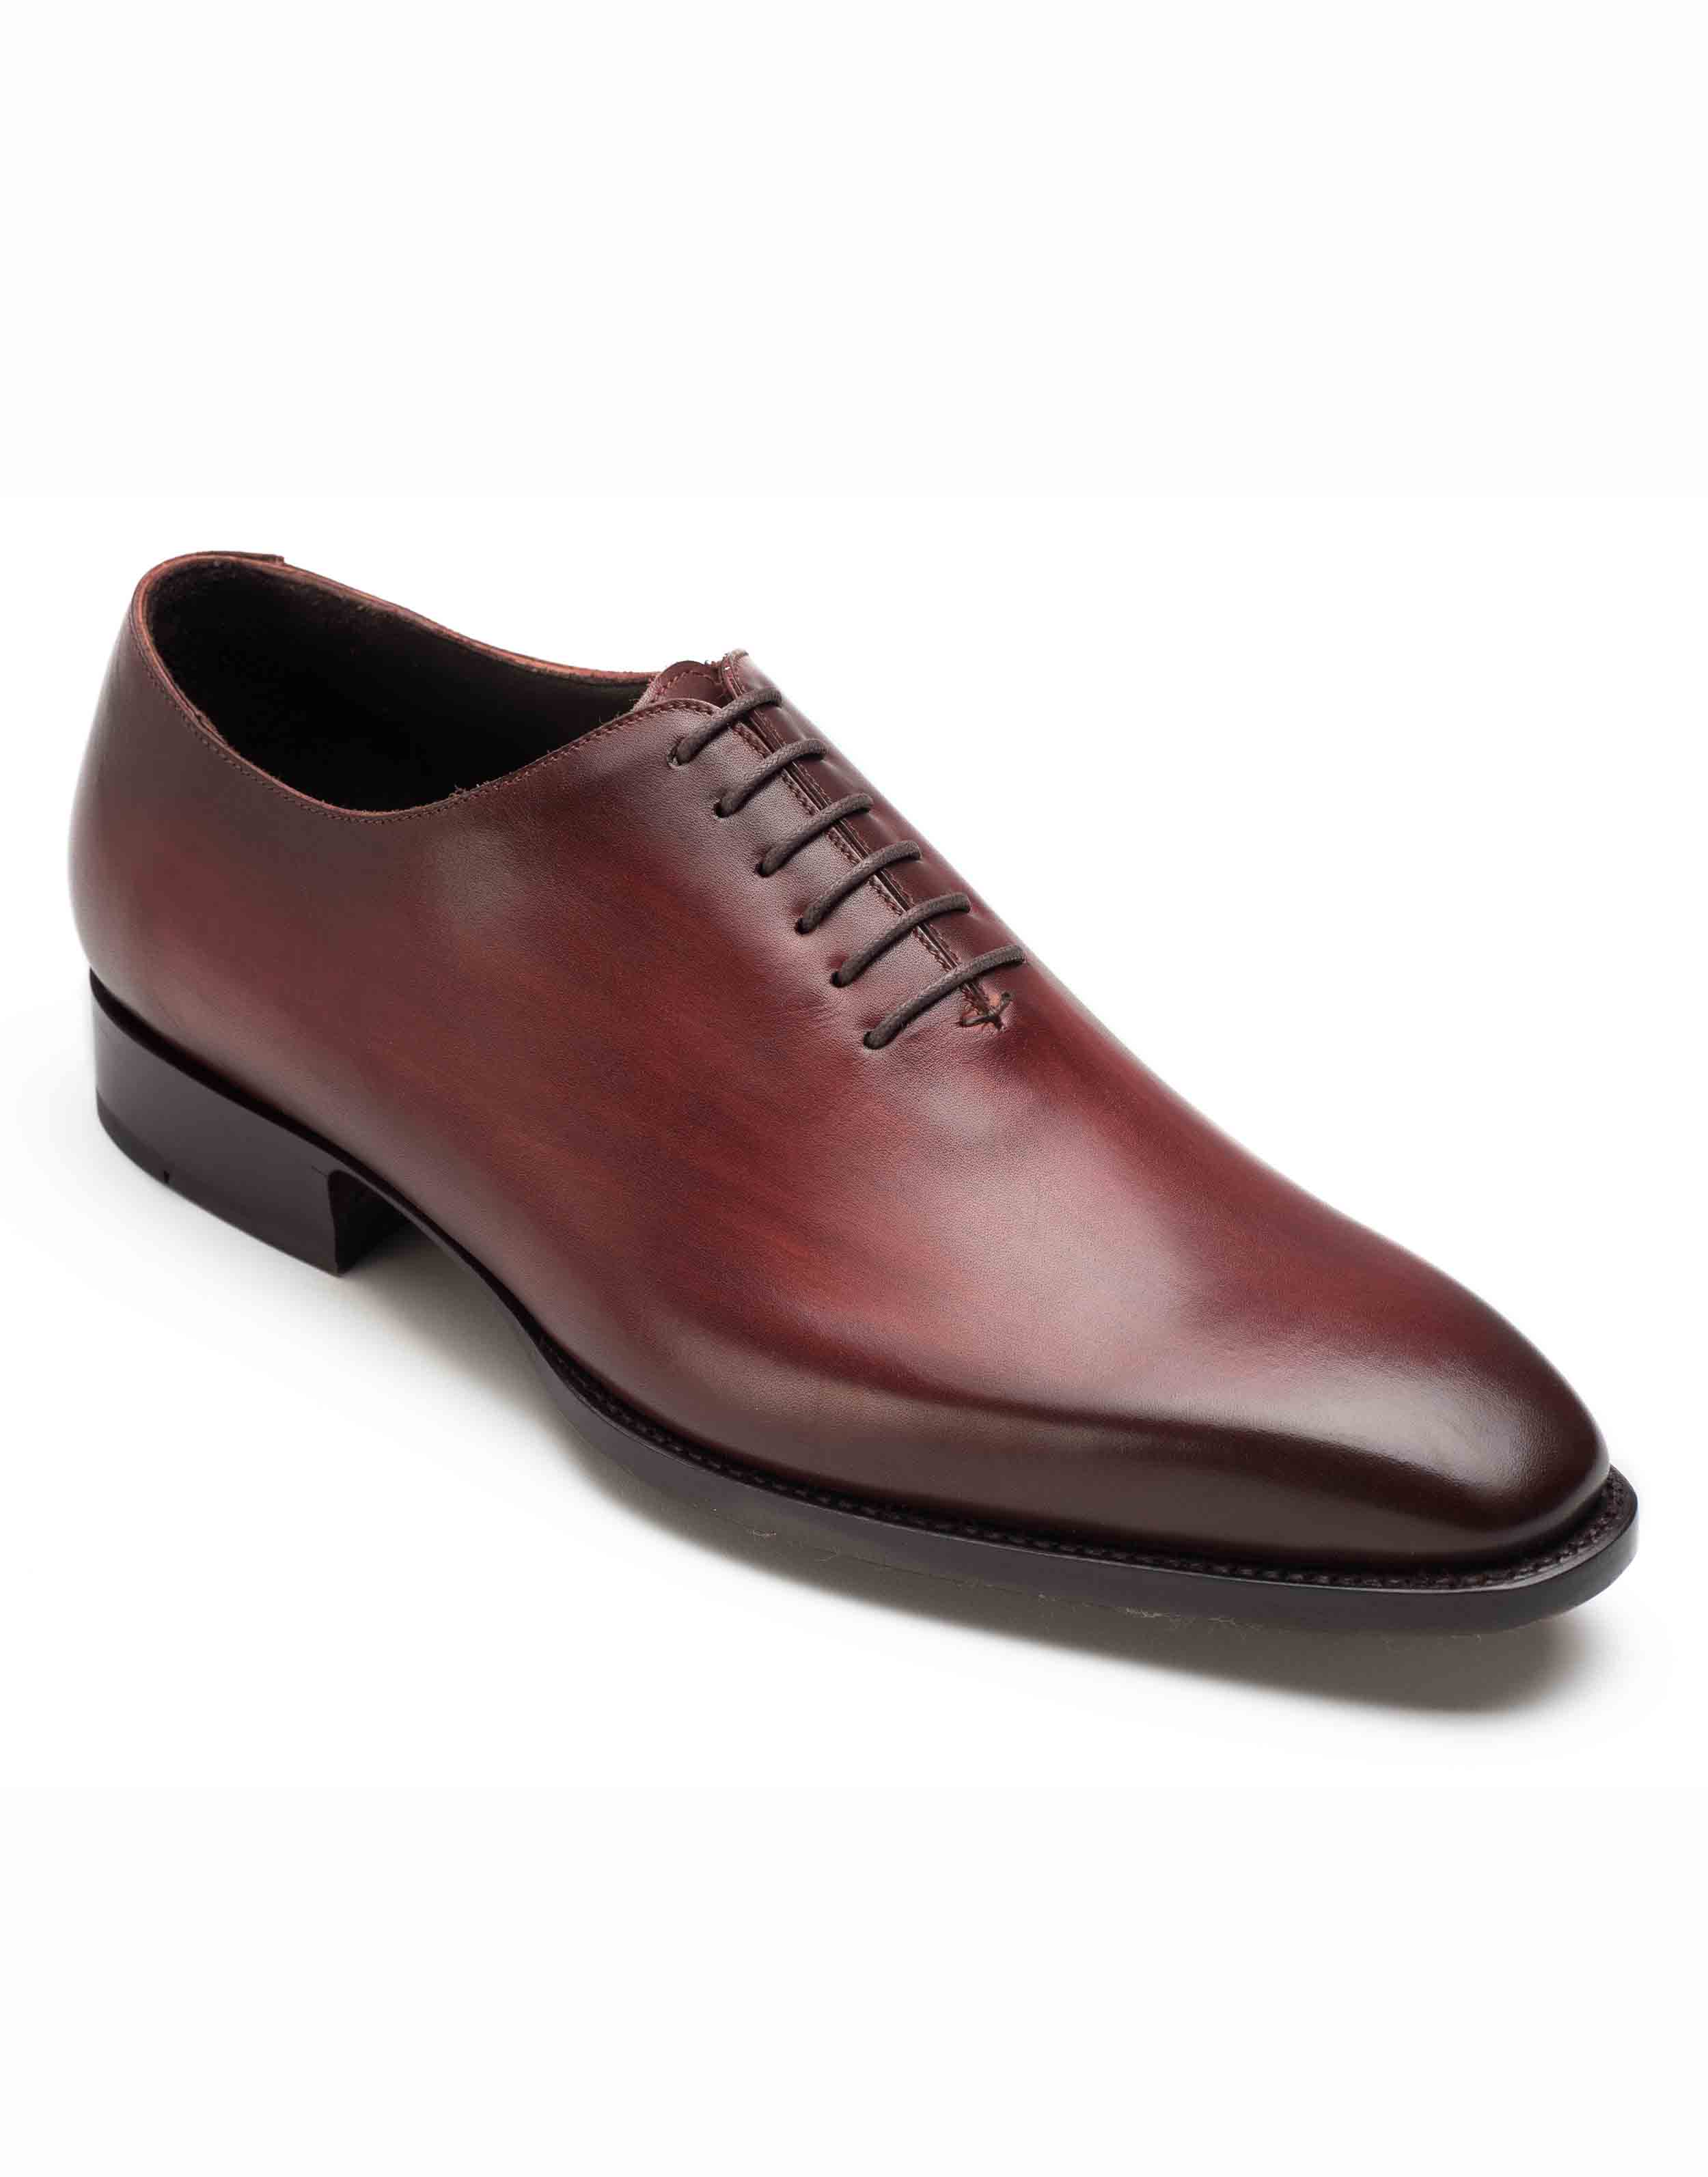 PLAIN TOE BURGUNDY OXFORD SHOE2